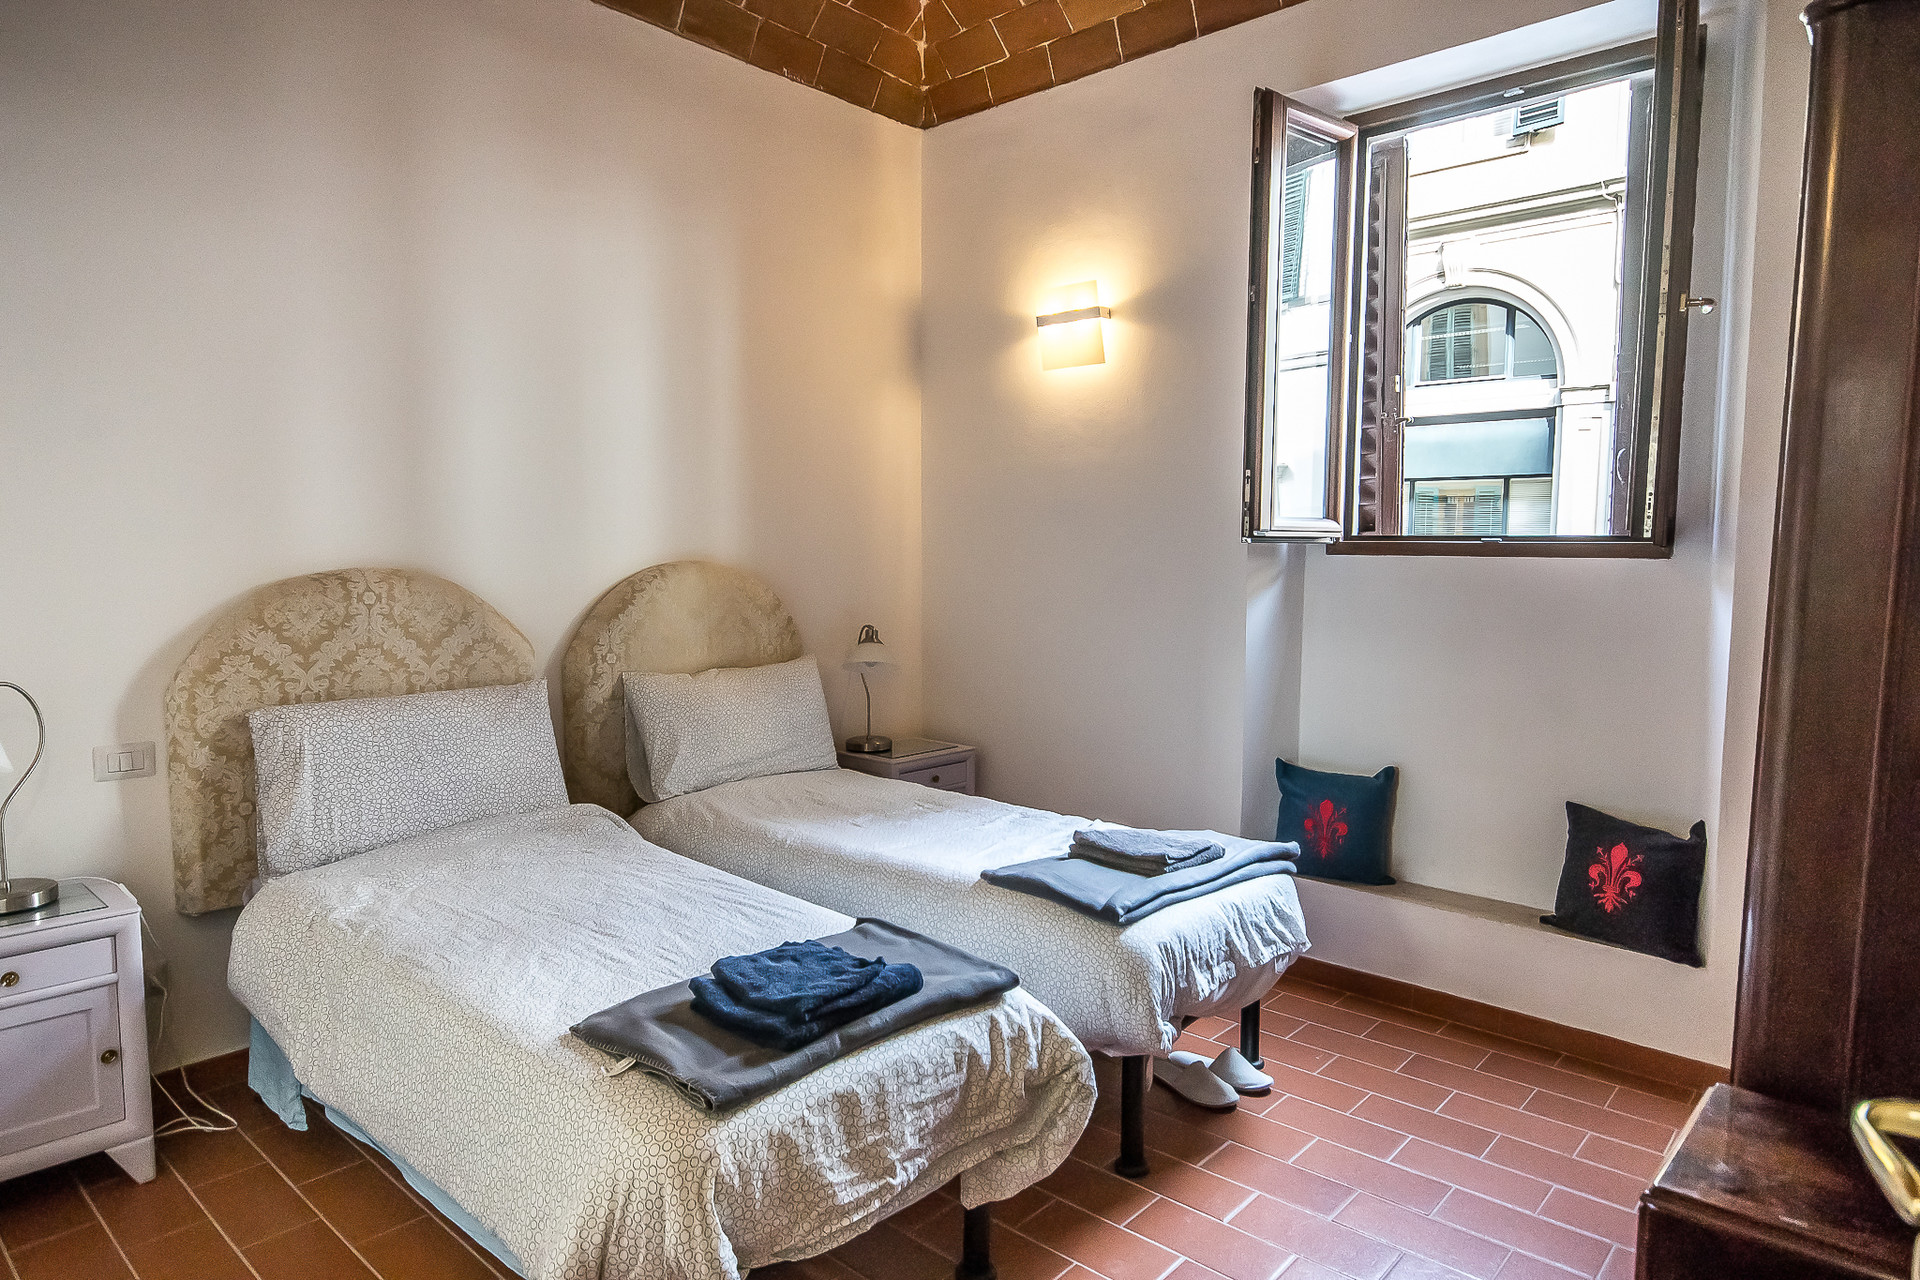 One Bed In Twin Bedroom In Modern Flat In Center Of Florence Price Per Bed Room For Rent Florence